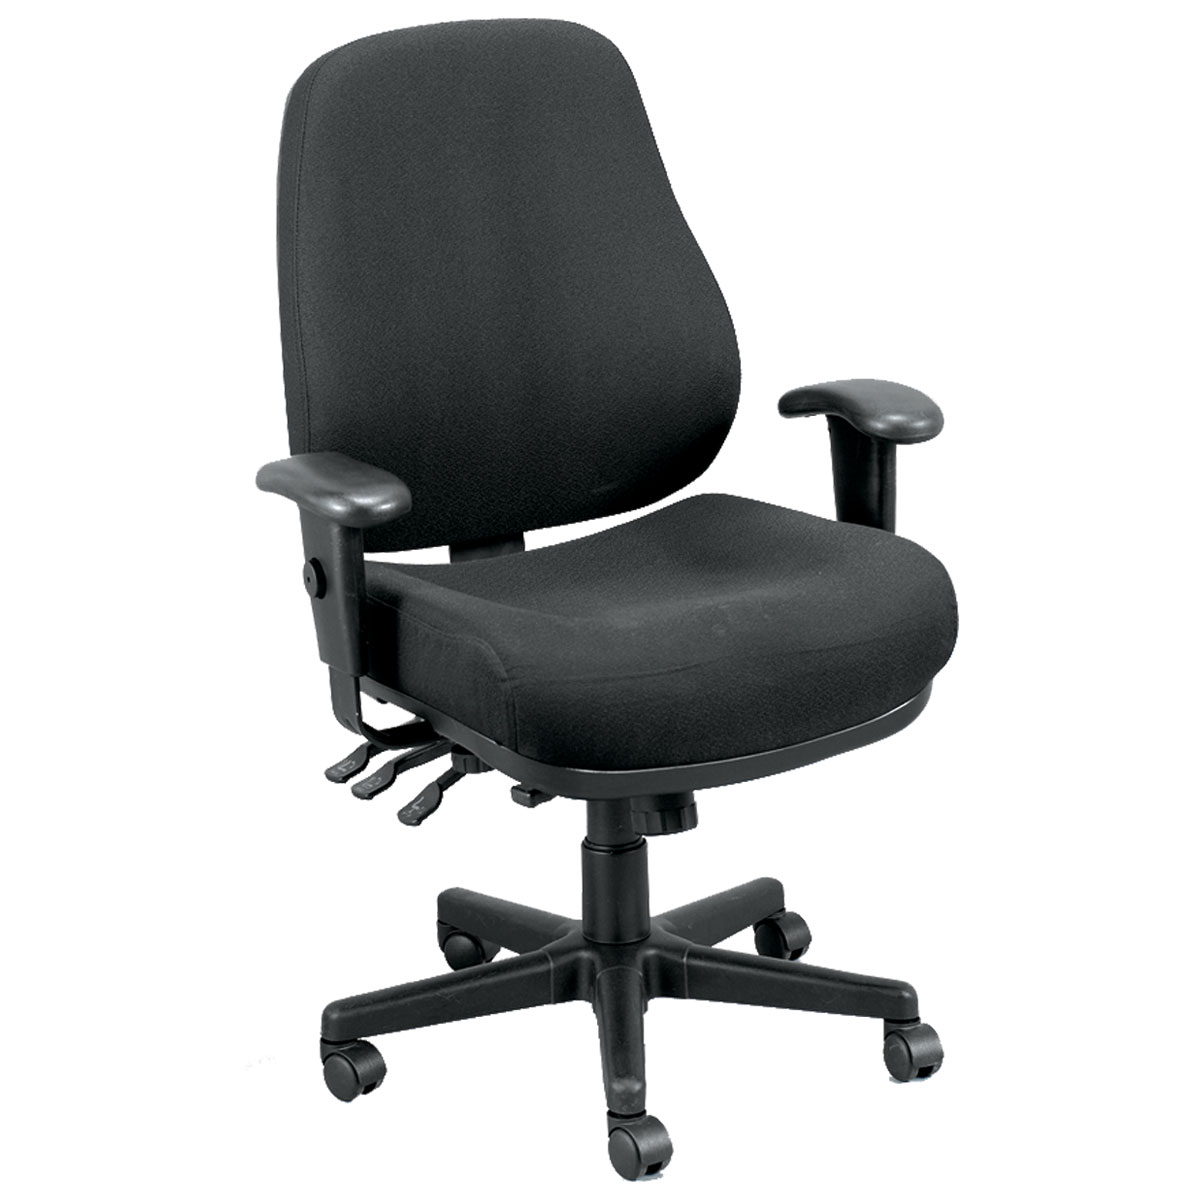 Raynor Chairs Raynor Eurotech 24 7 Ergonomic Intensive Use Chair